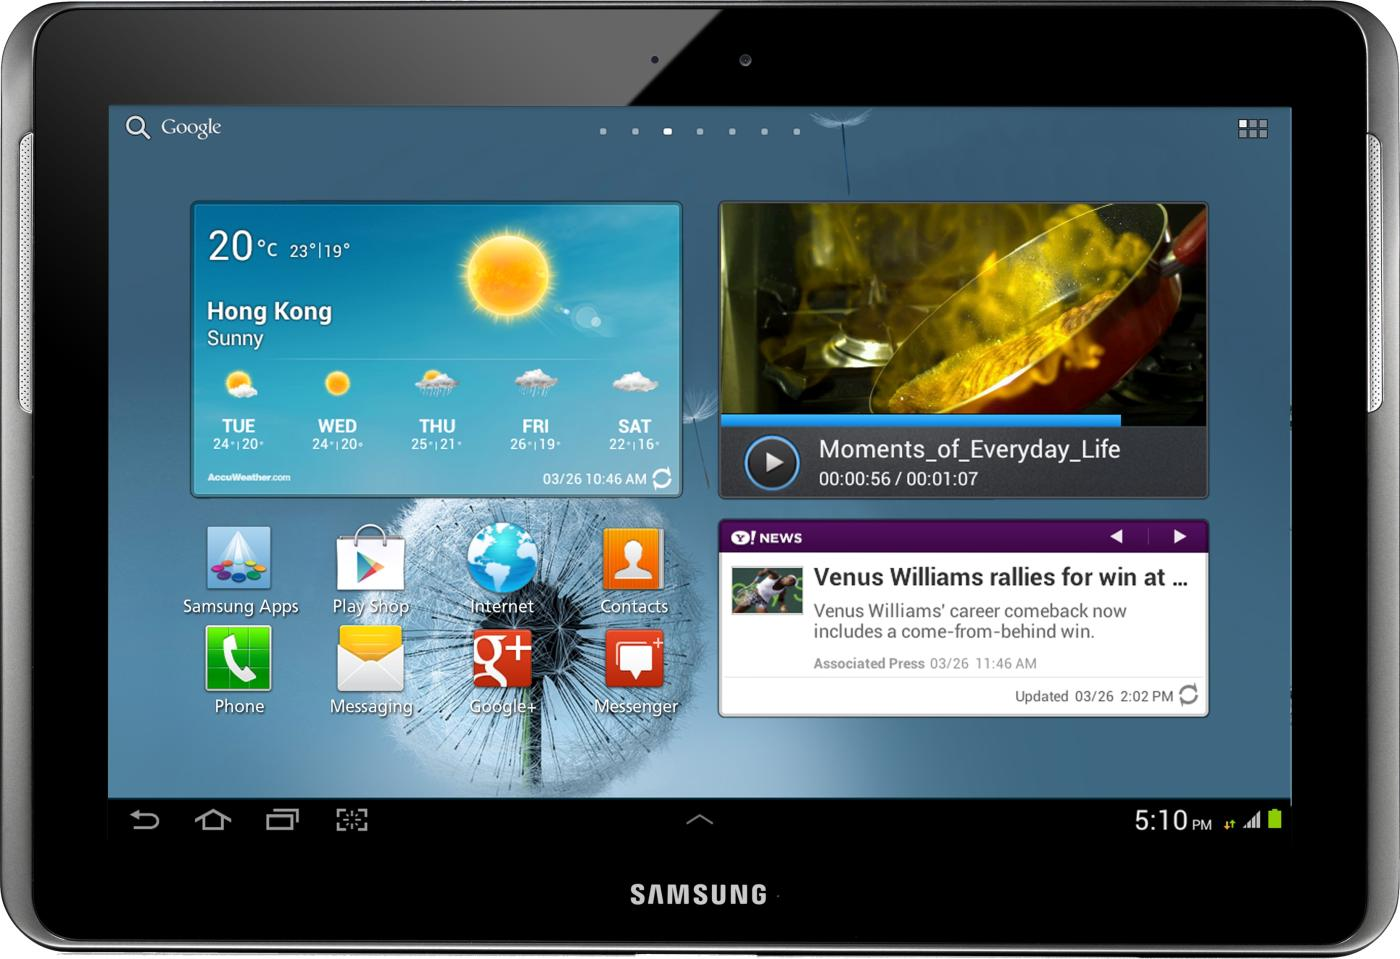 How To Update Samsung Galaxy Tab 2 7 0 To Android 5 1 Lollipop